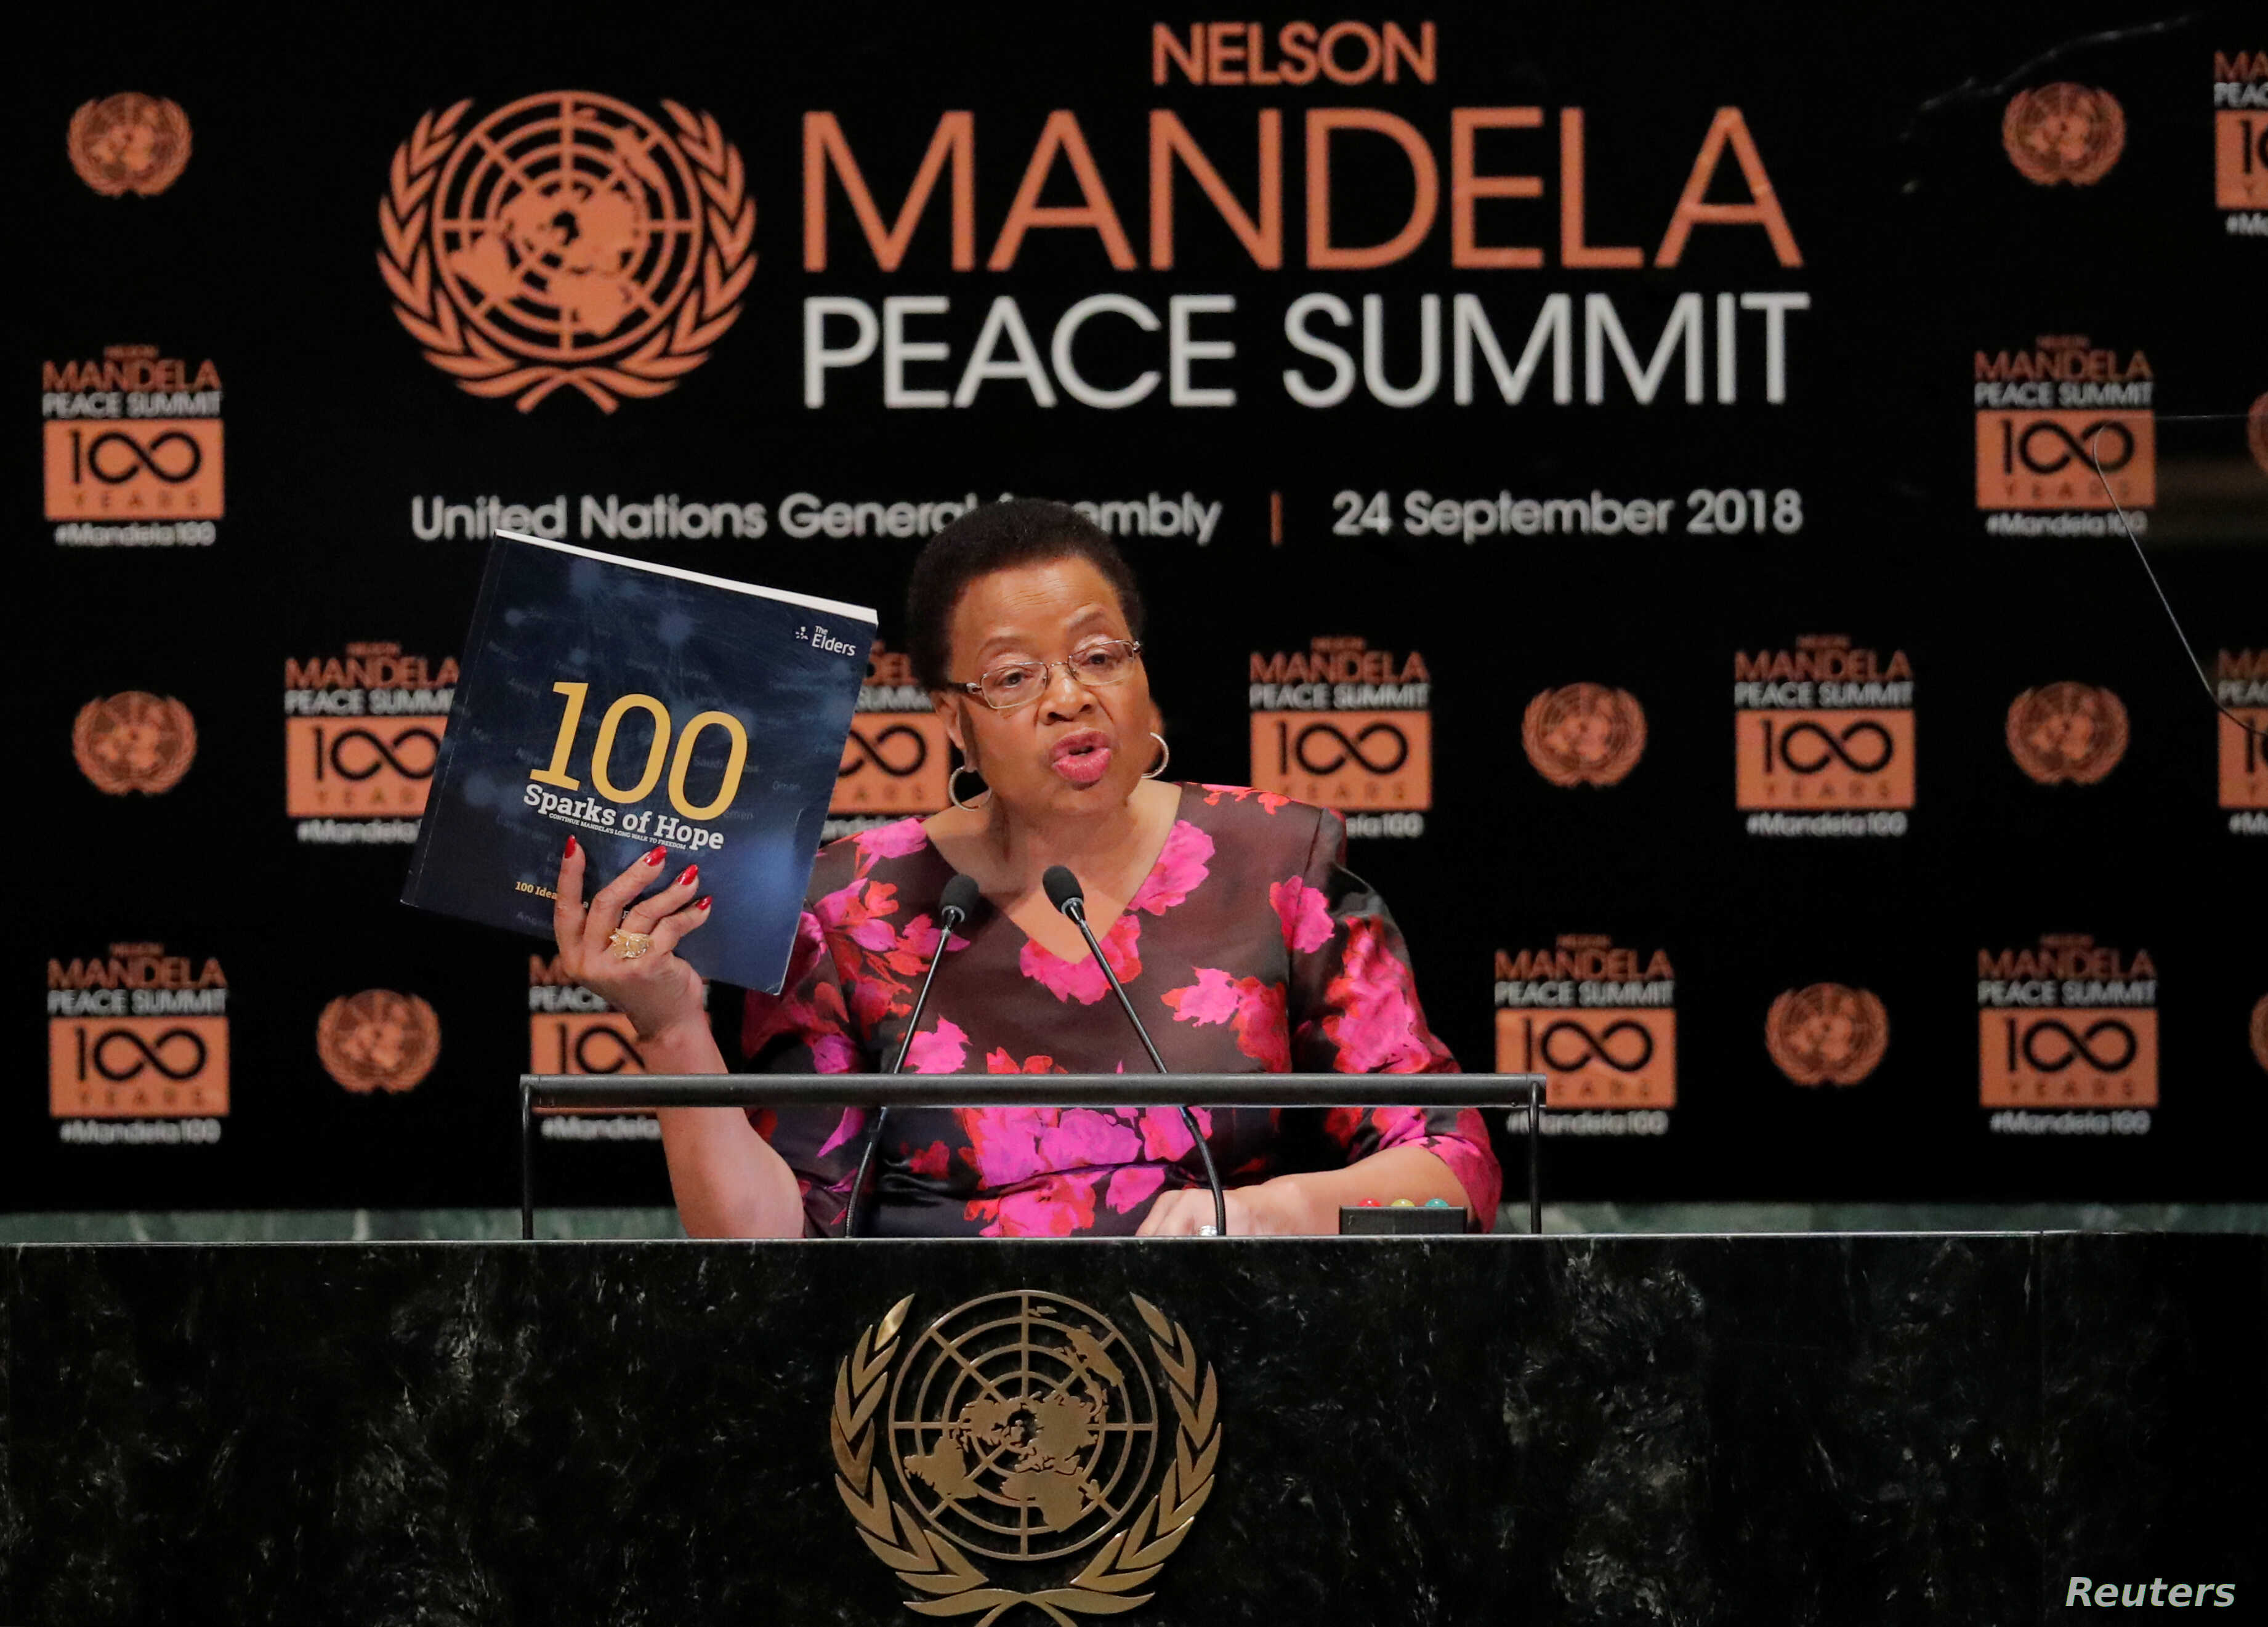 Graca Machel, member of the Elders, speaks at the Nelson Mandela Peace Summit during the 73rd United Nations General Assembly in New York, Sept. 24, 2018.